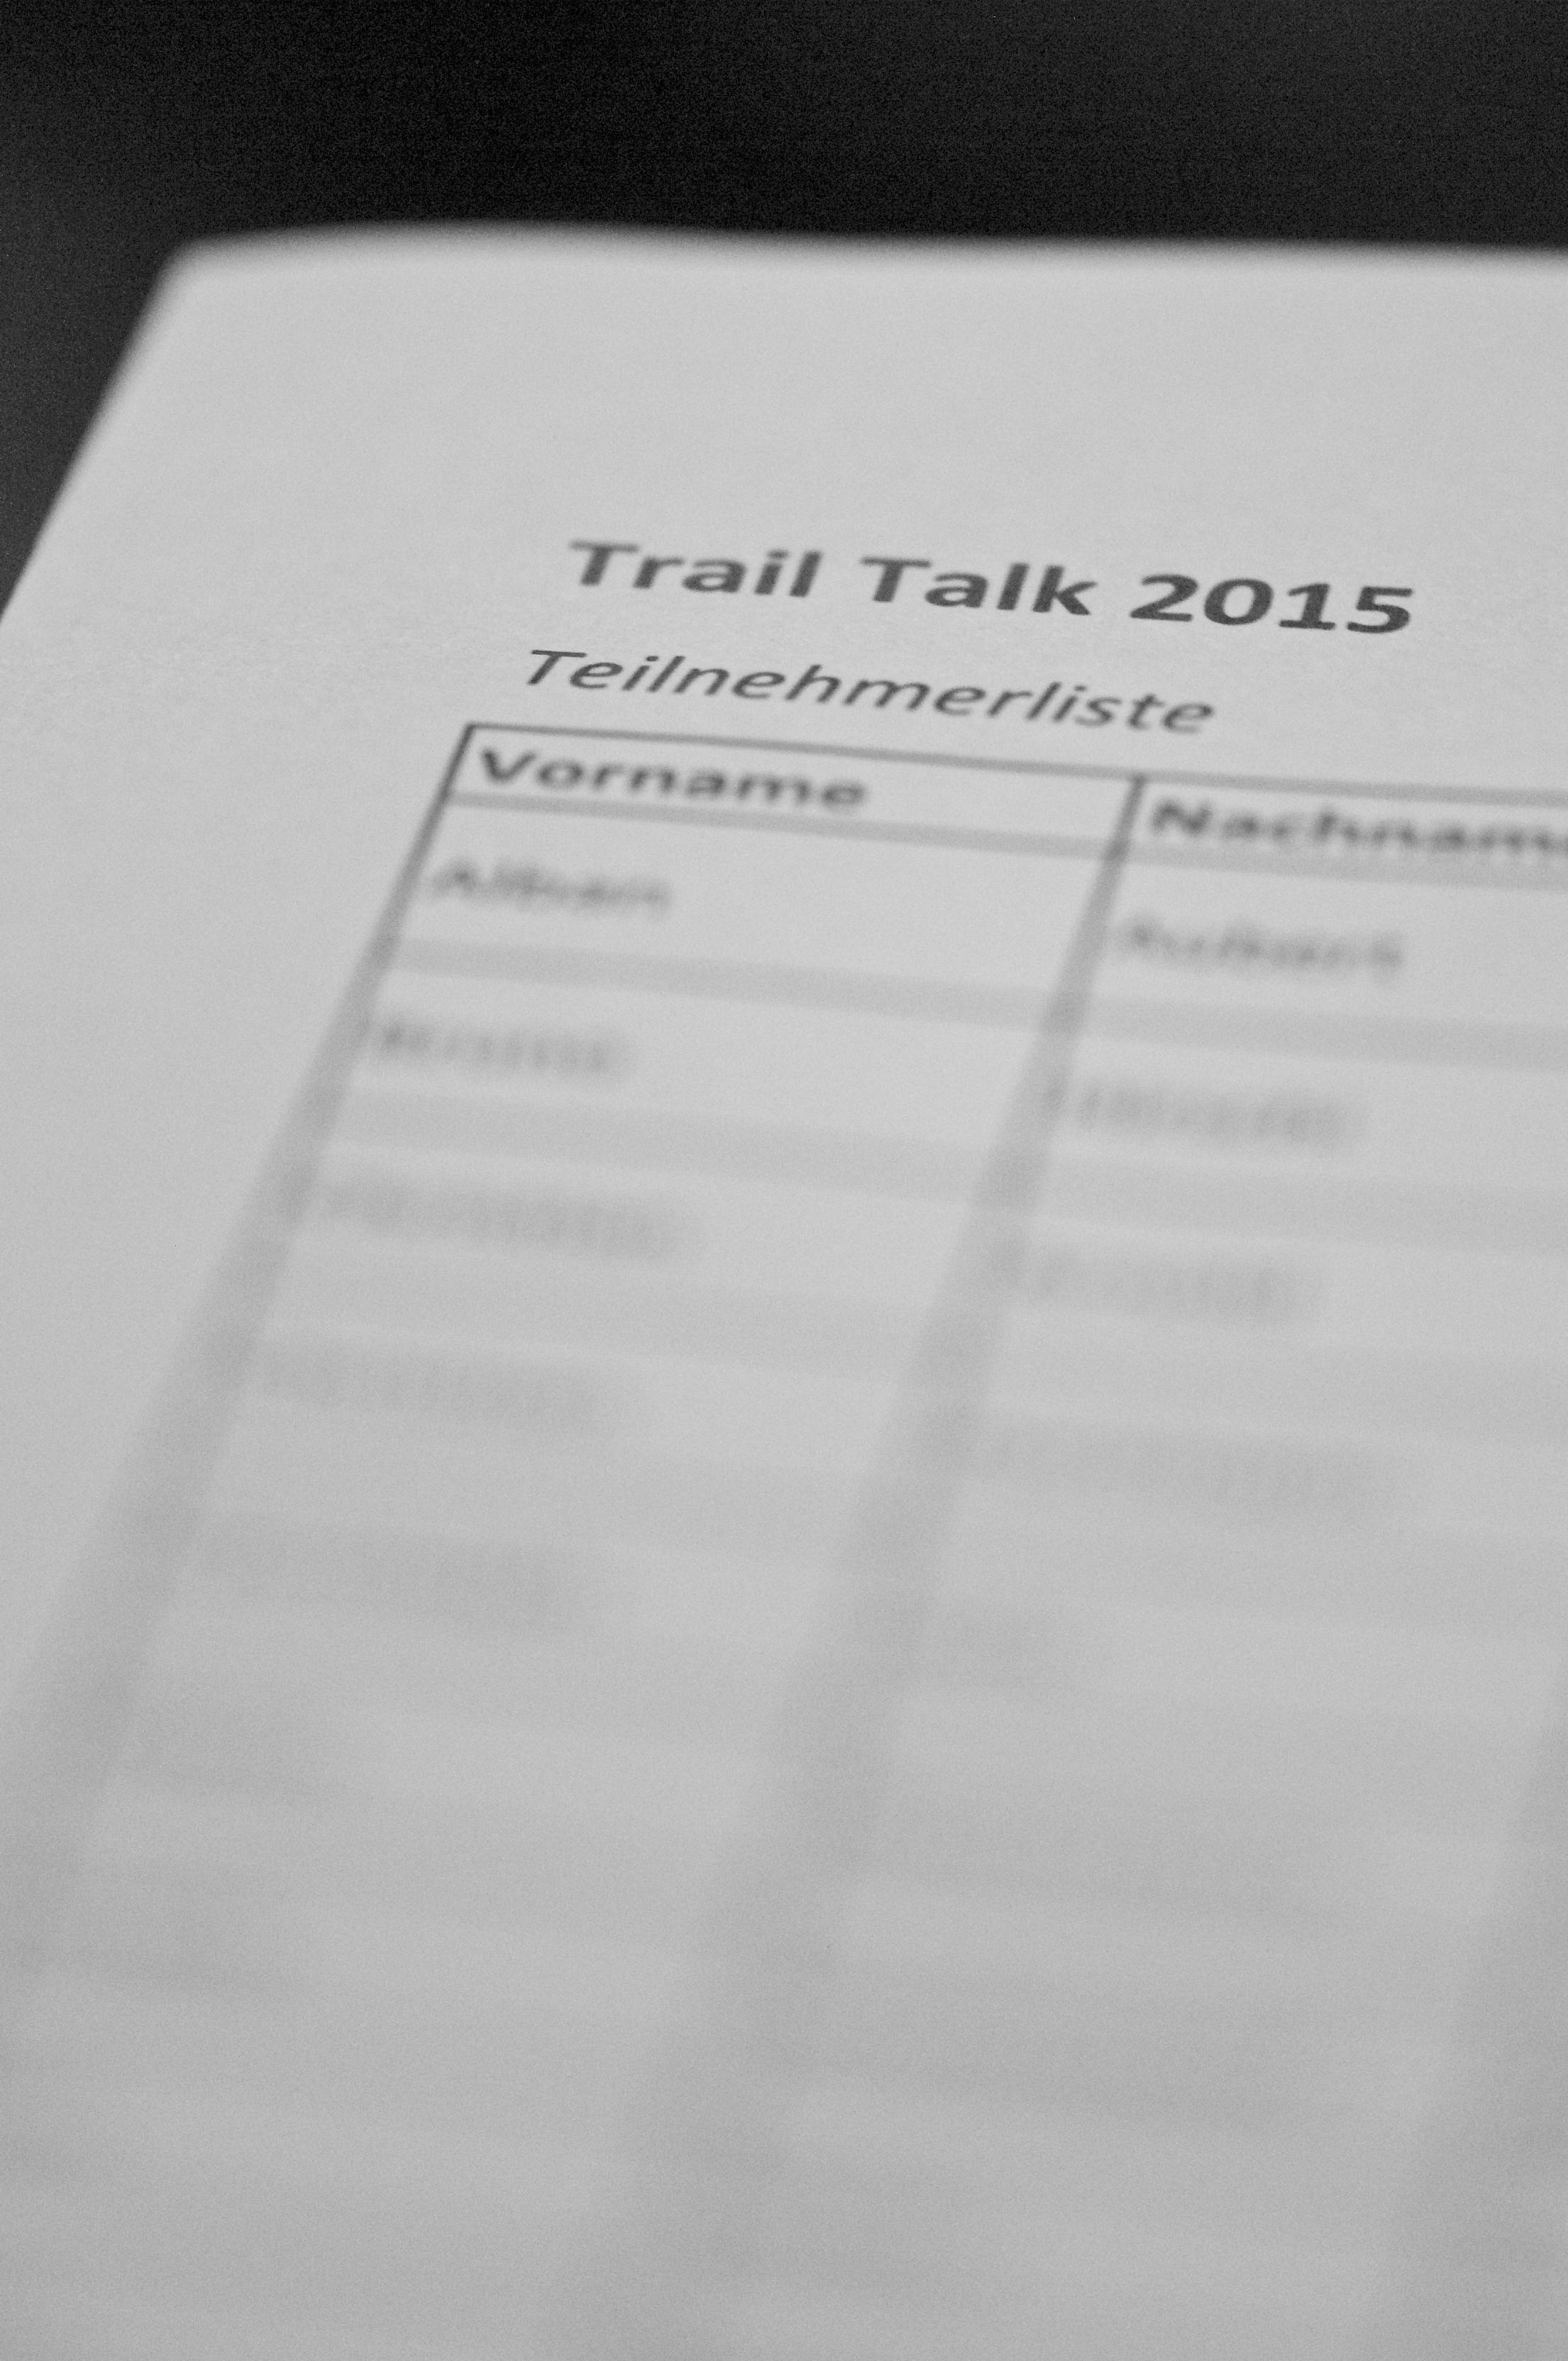 trail talk 2015